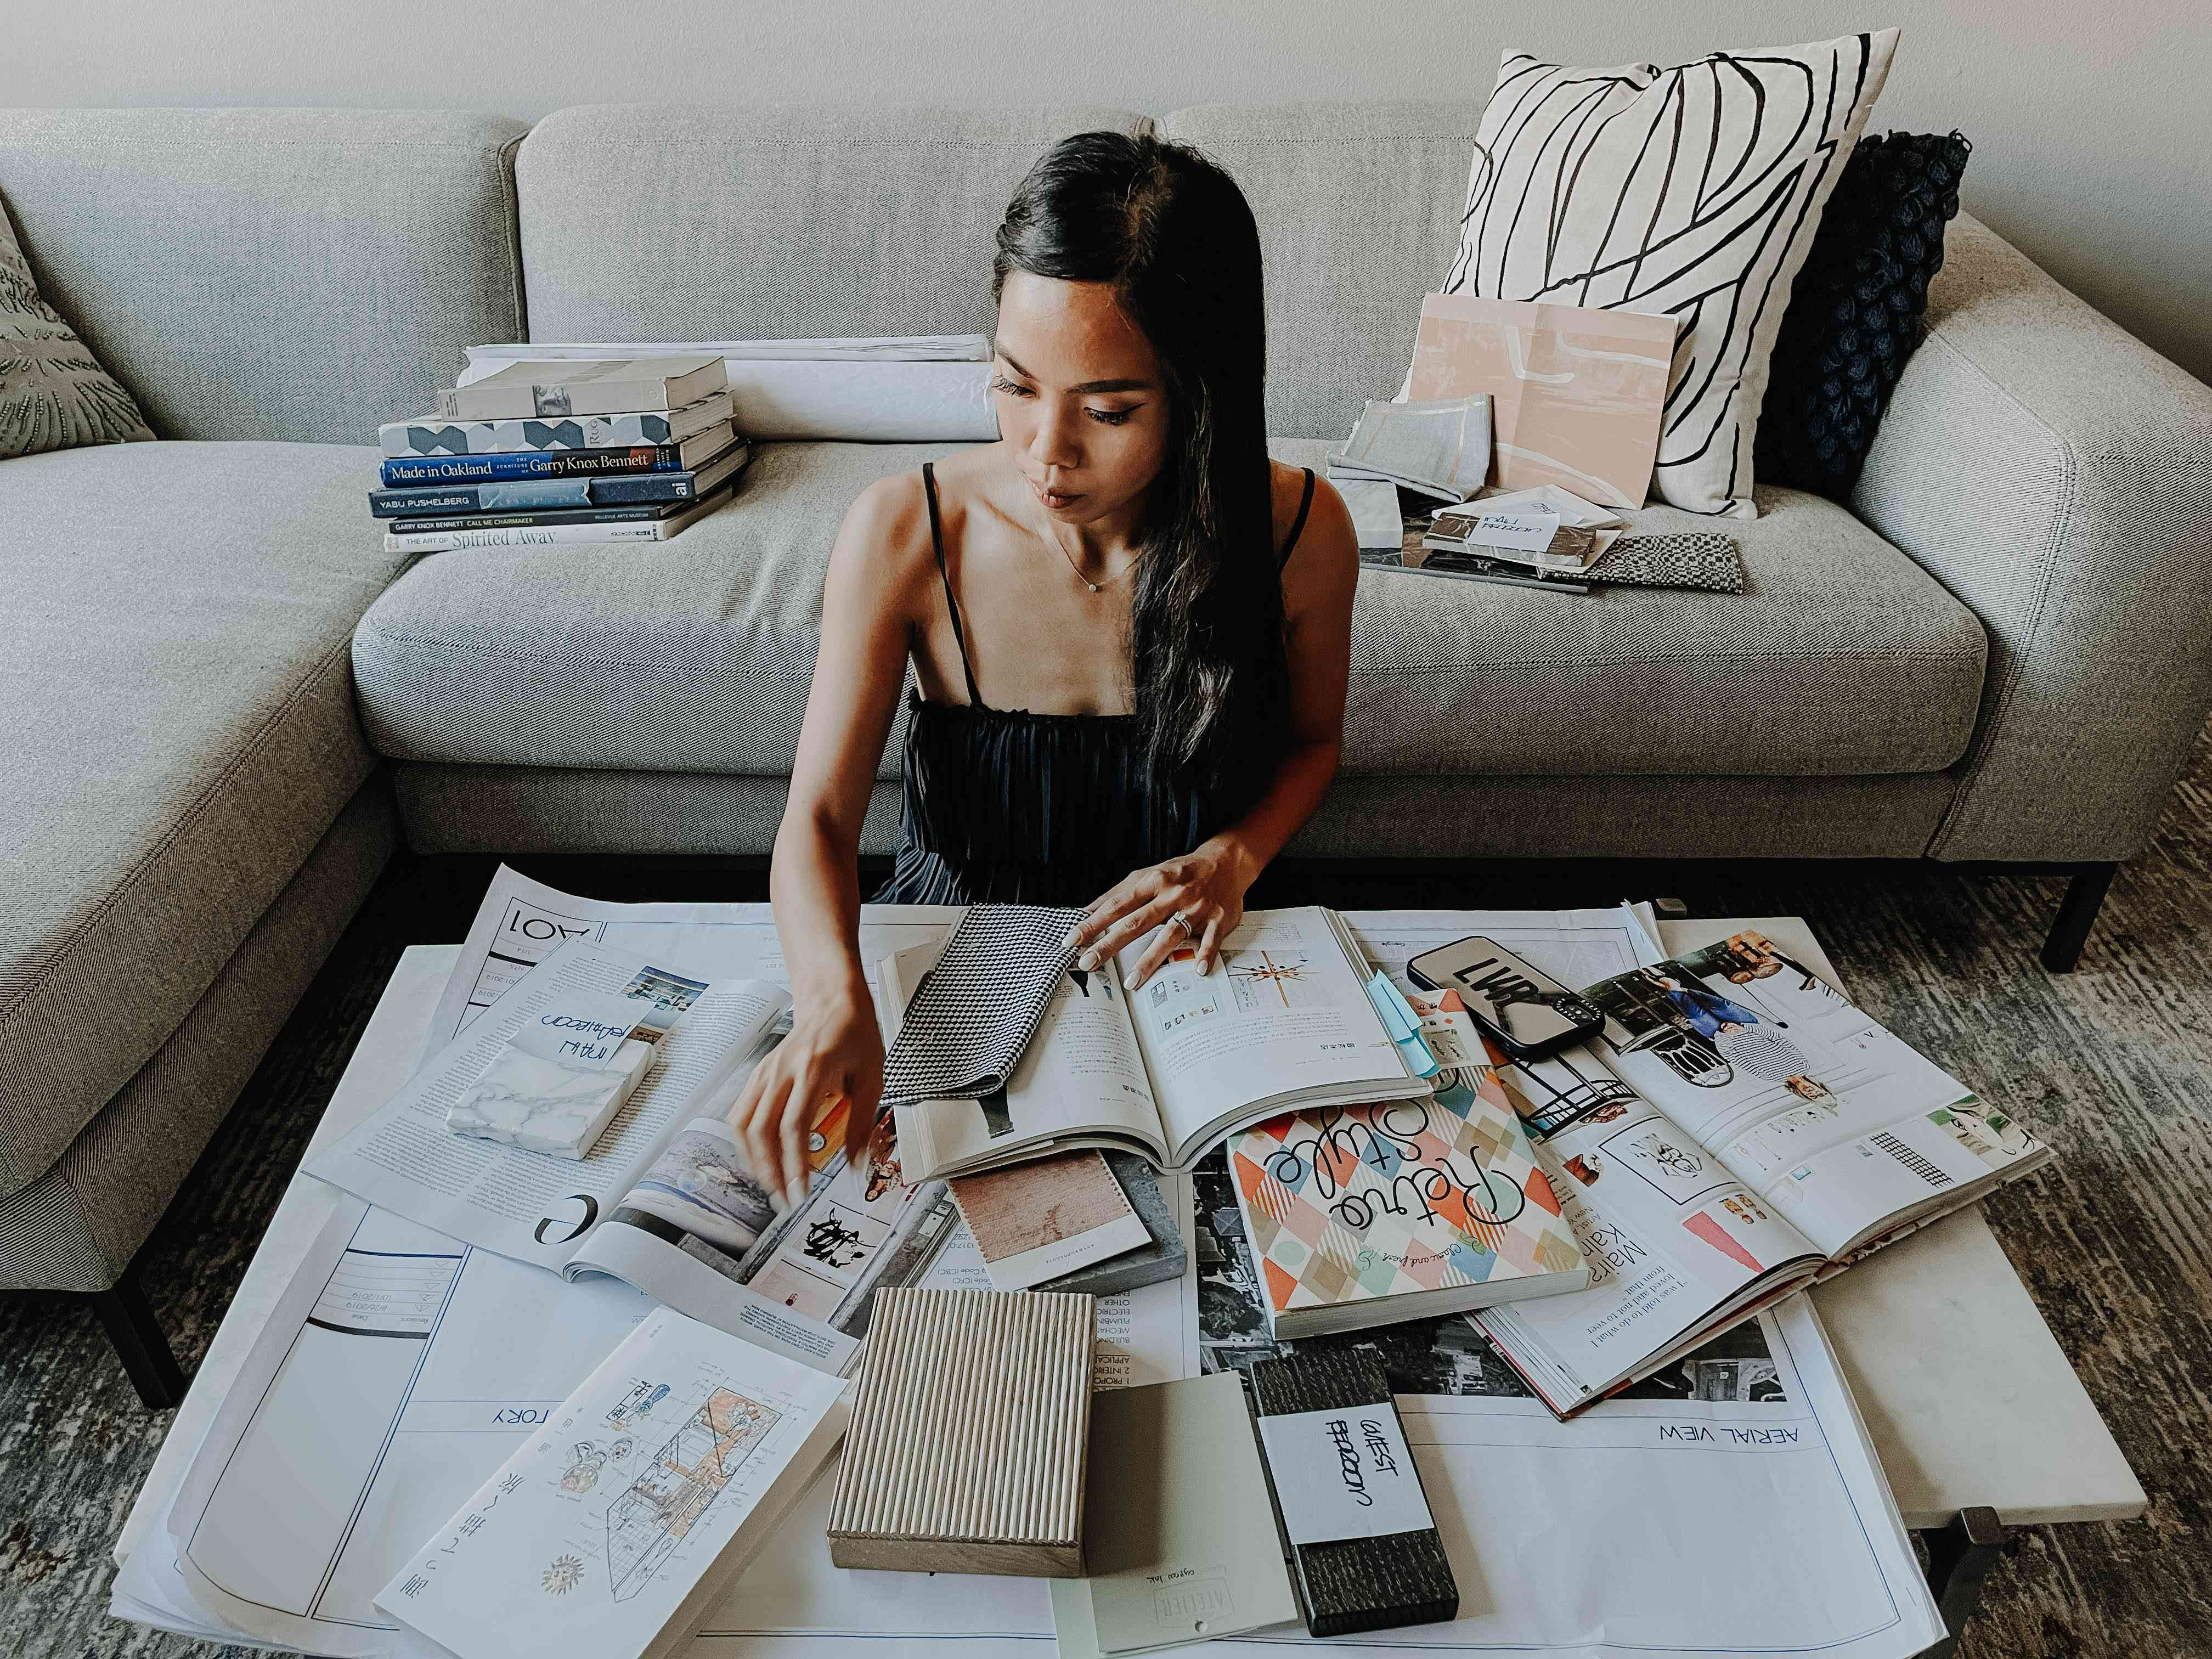 Lauren Reyes Lim poses with books and magazines next to a couch